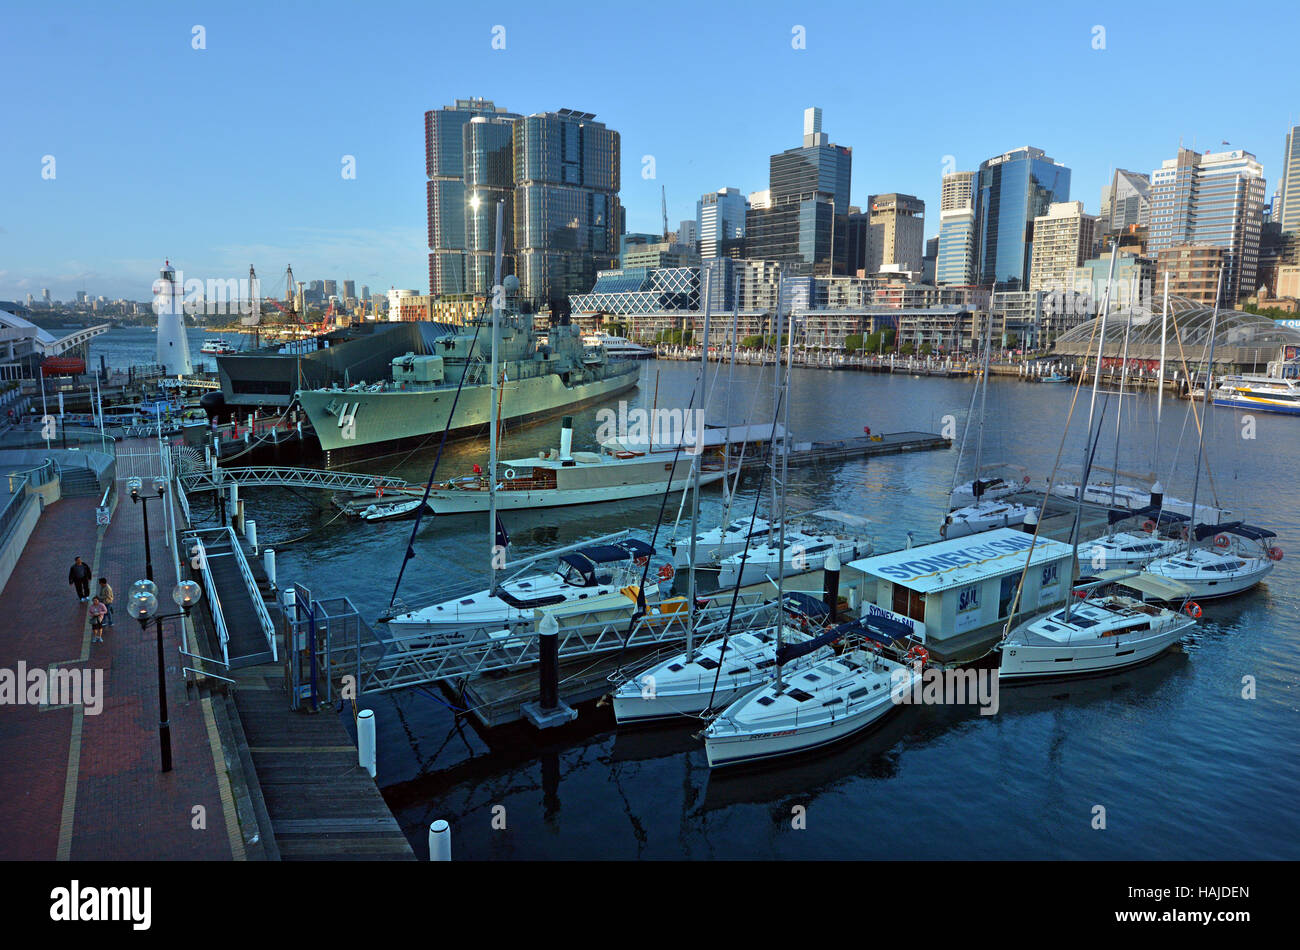 SYDNEY - OCT 20 2016: Cityscape of Darling Harbour, a recreational and pedestrian precinct situated on western outskirts - Stock Image